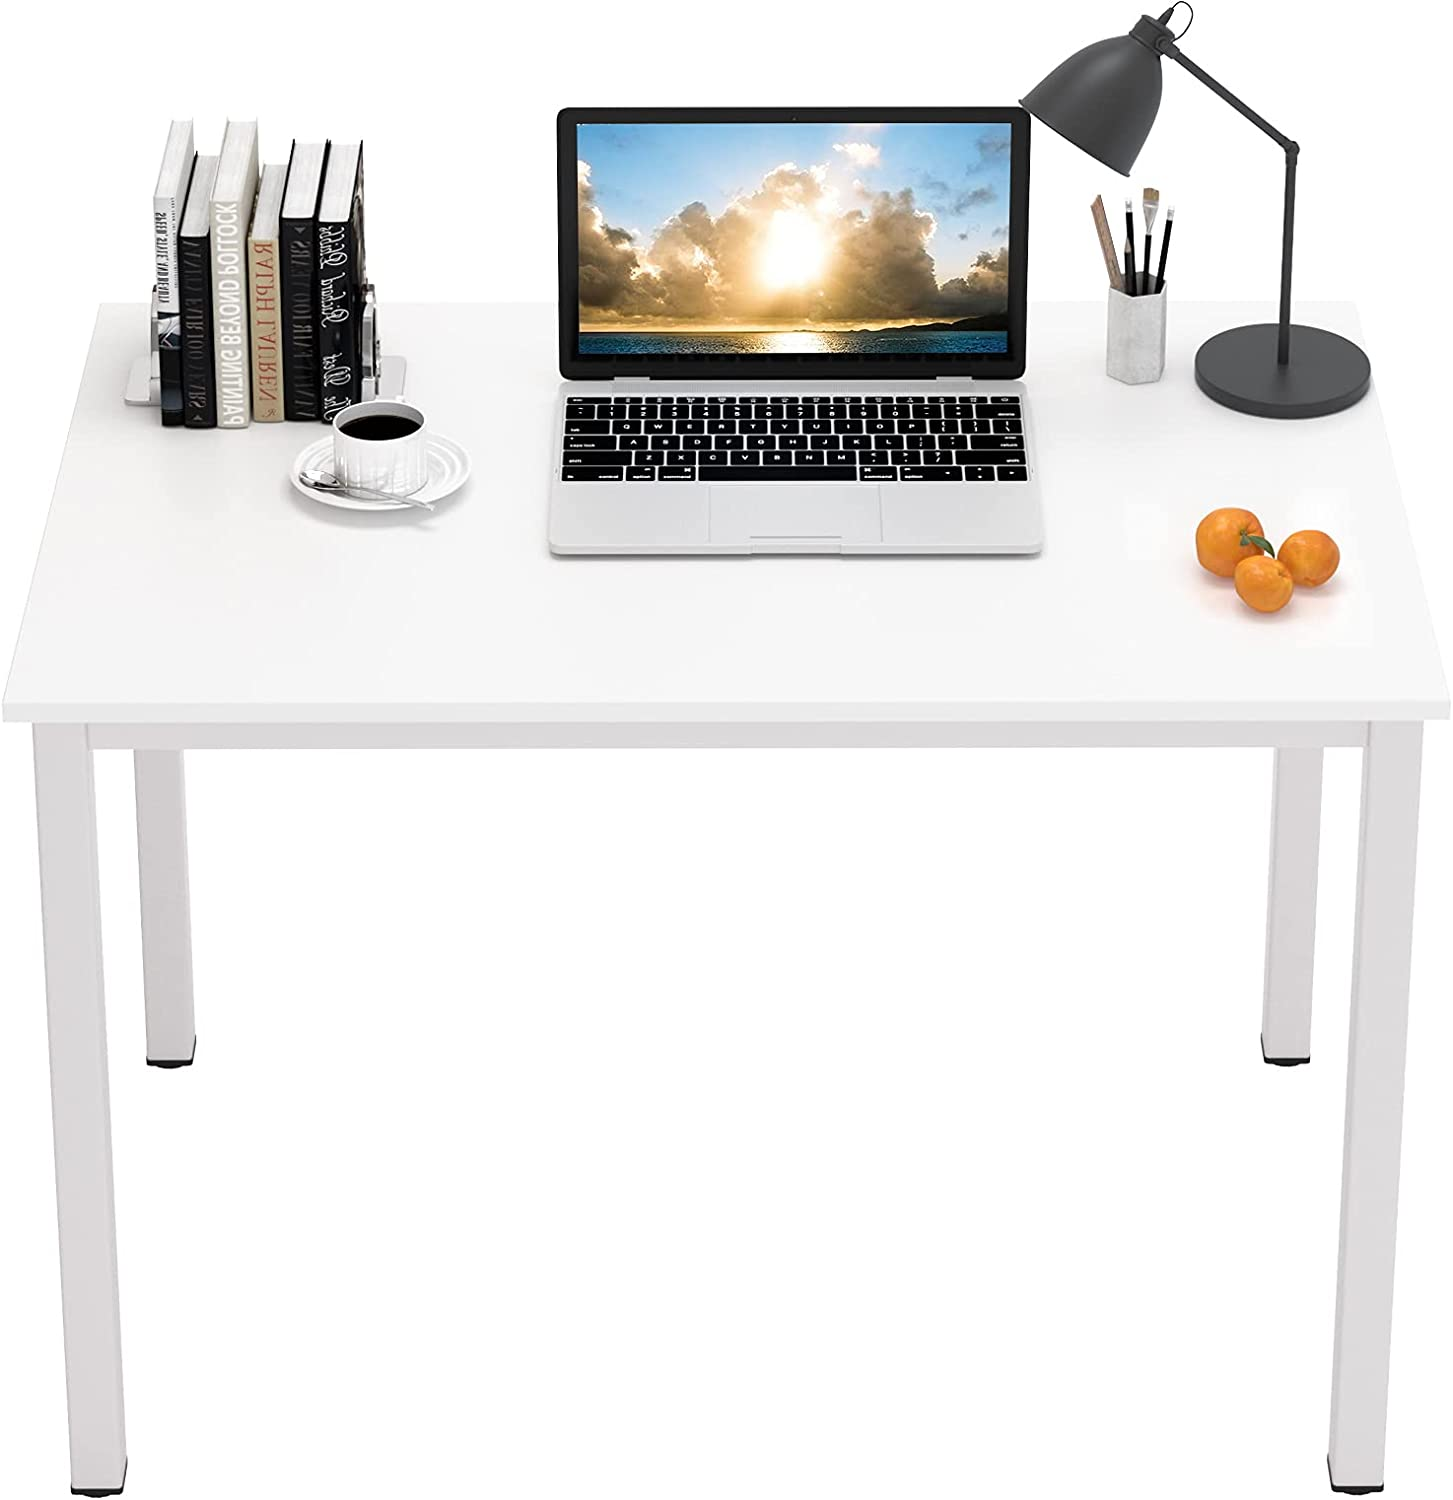 DlandHome 39 inches Small Computer Desk for Home Office Activity Table Writing Table for Small Spaces Study Table Student Laptop Desk White DND-AC3DW-100